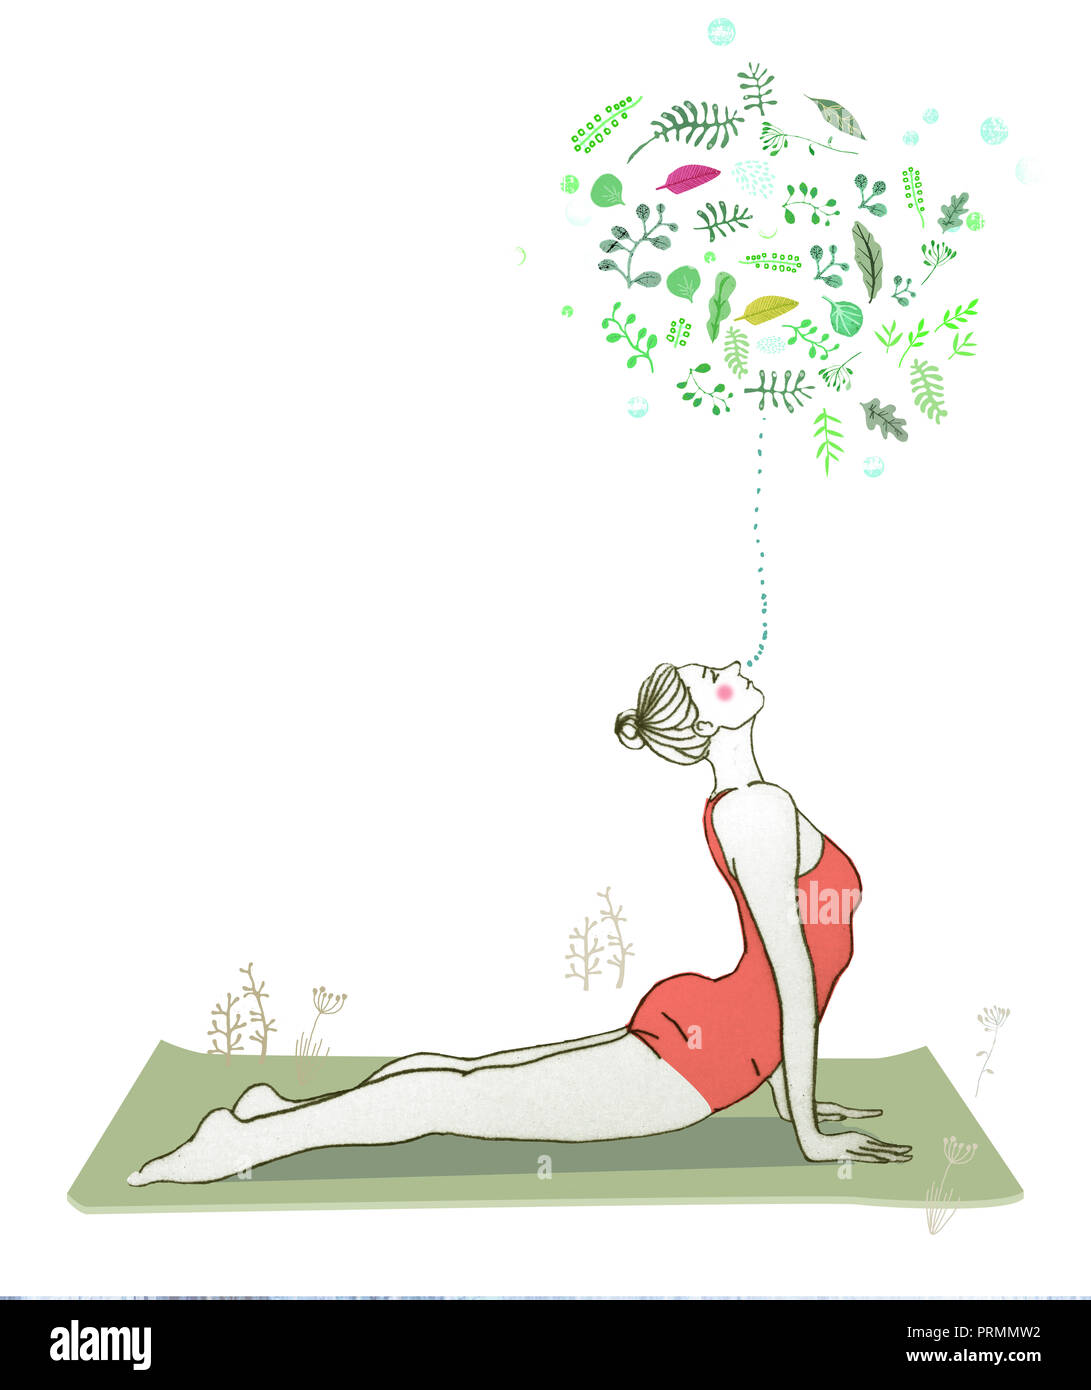 yoga - Stock Image